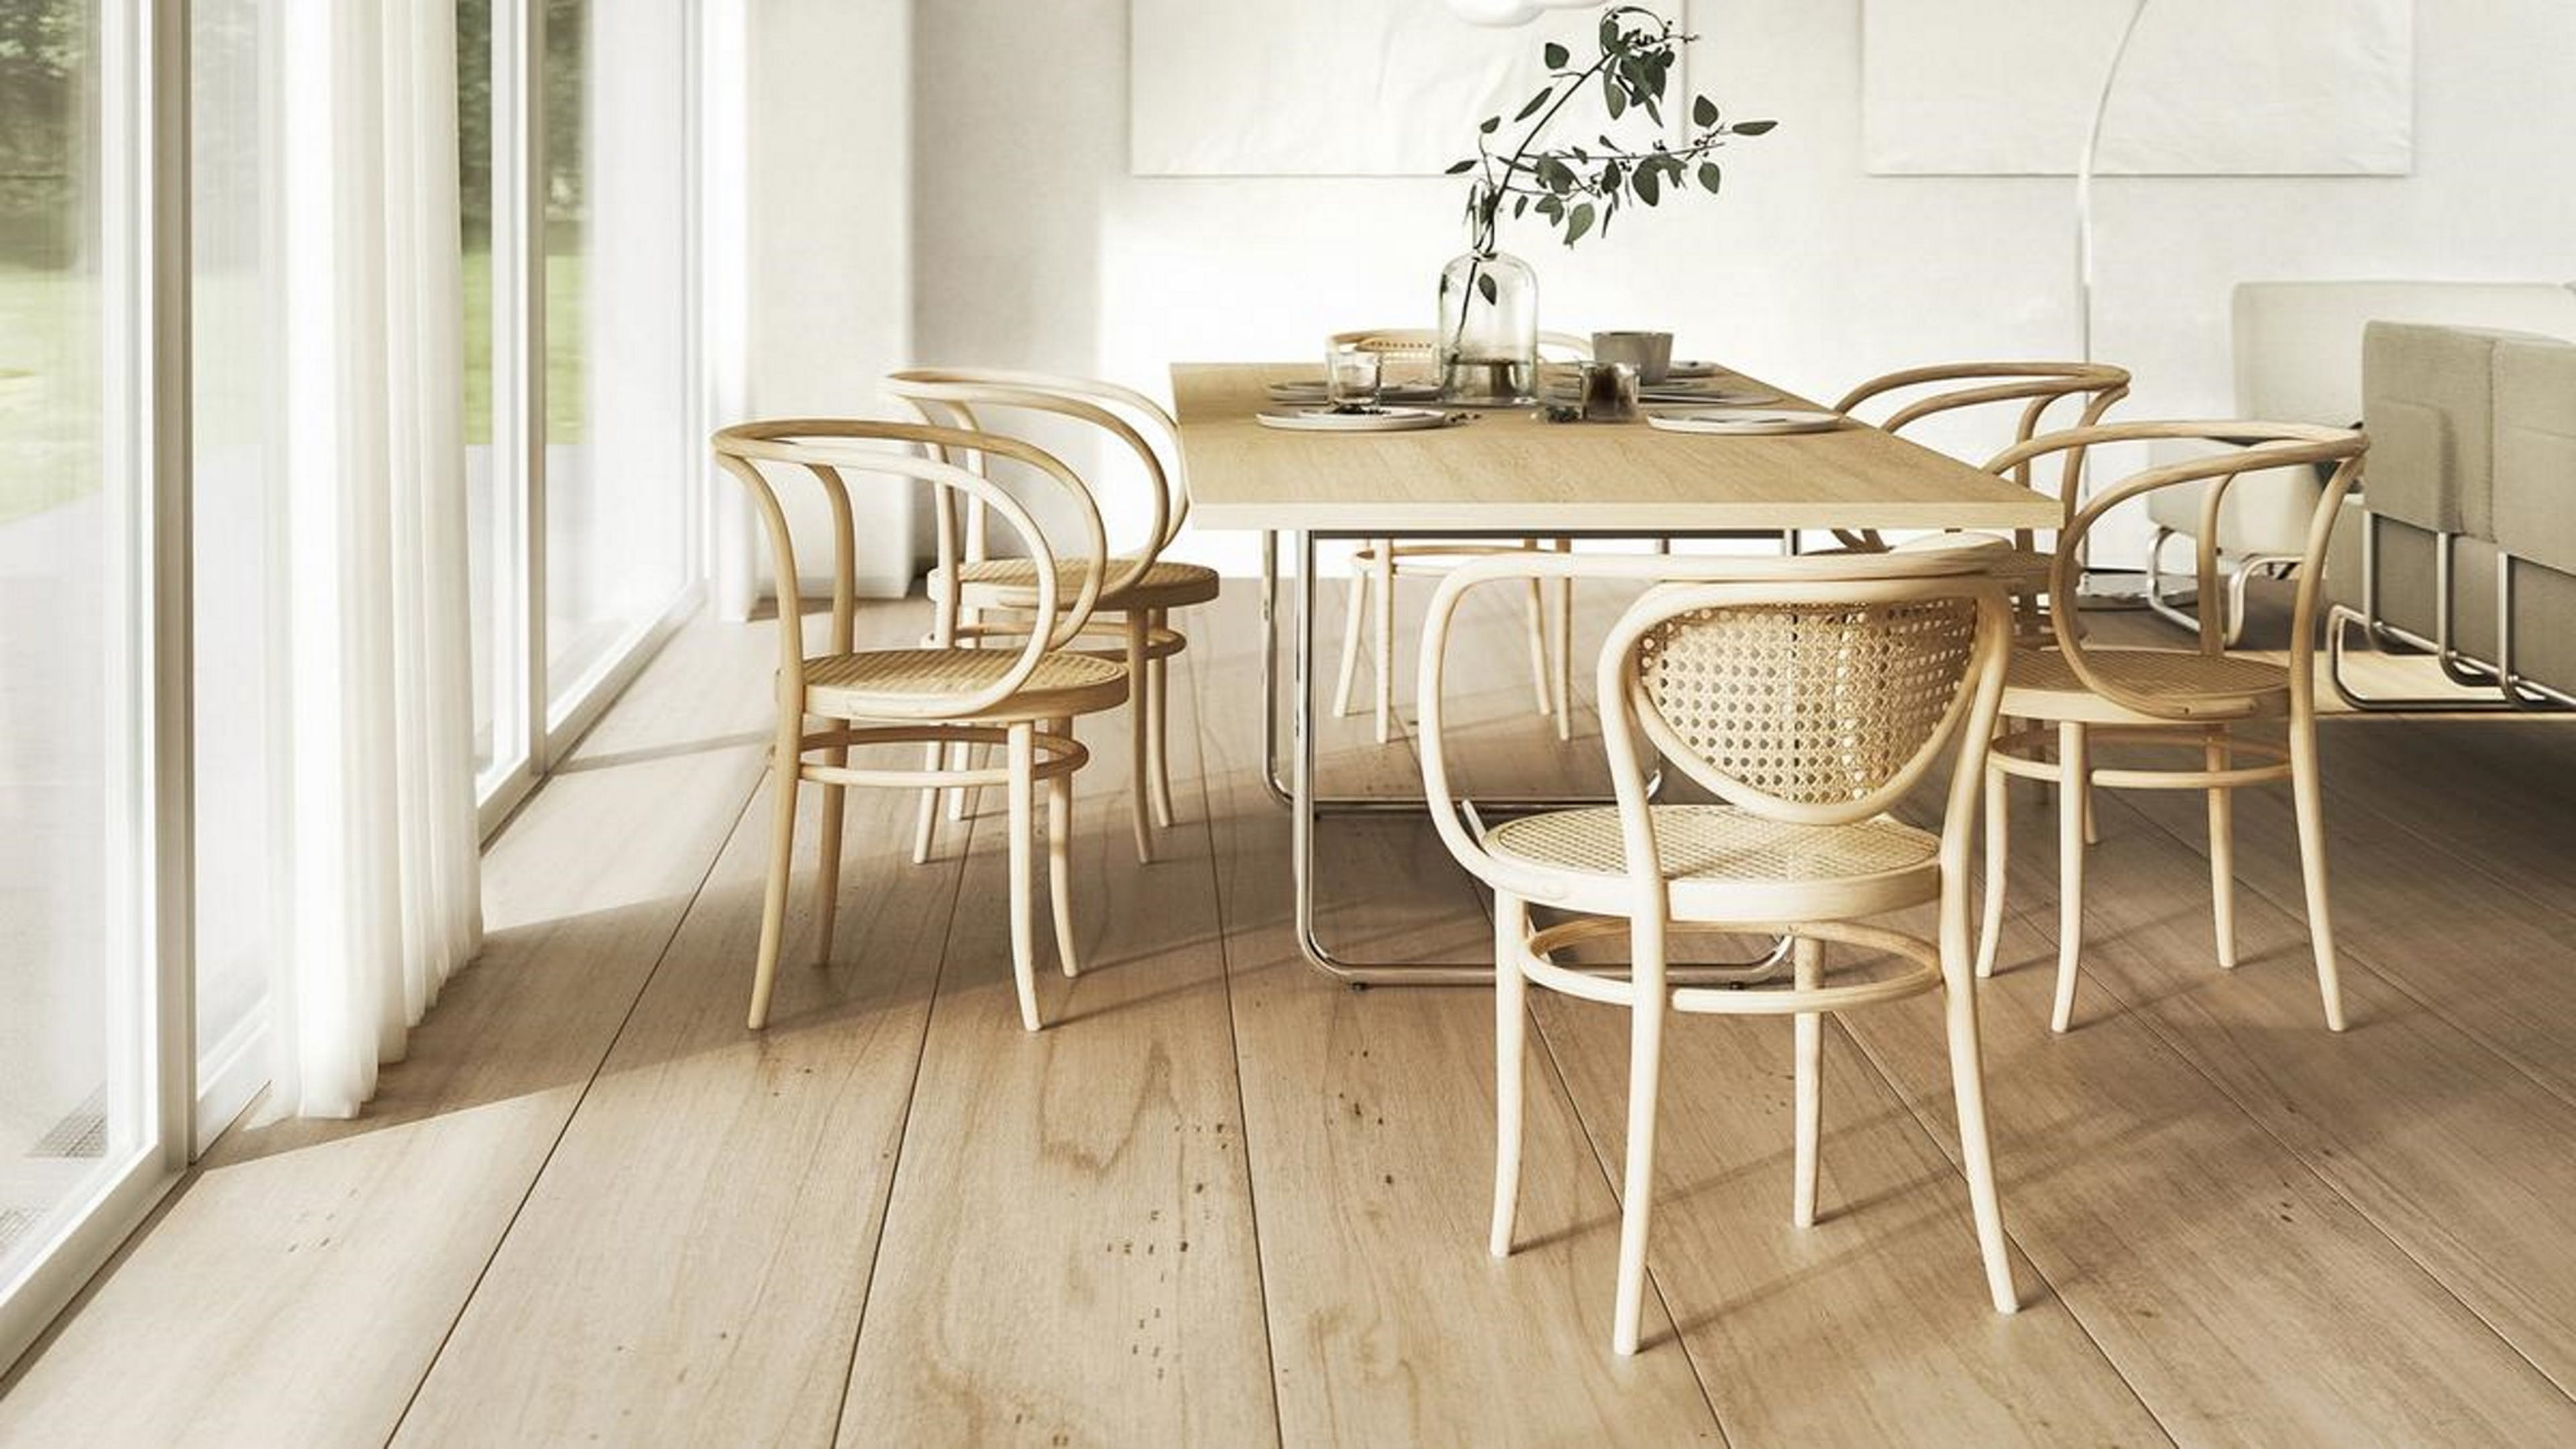 Sustainable living with Thonet furniture